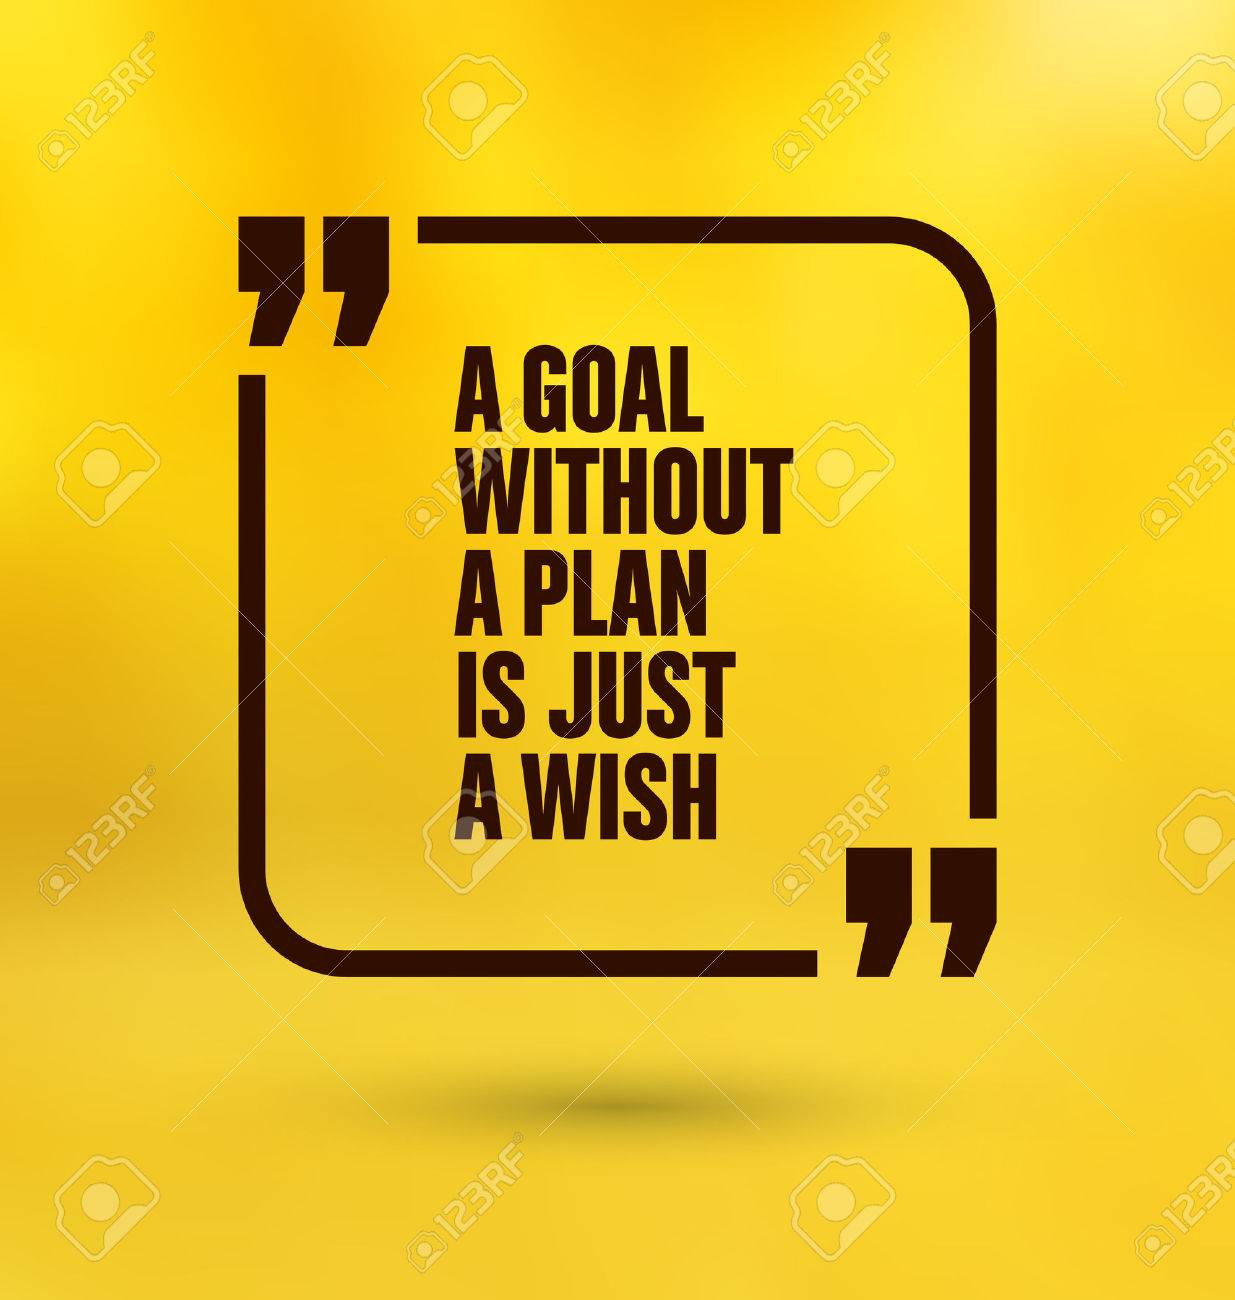 Framed Quote On Yellow Background   A Goal Without A Plan Is Just A Wish  Stock